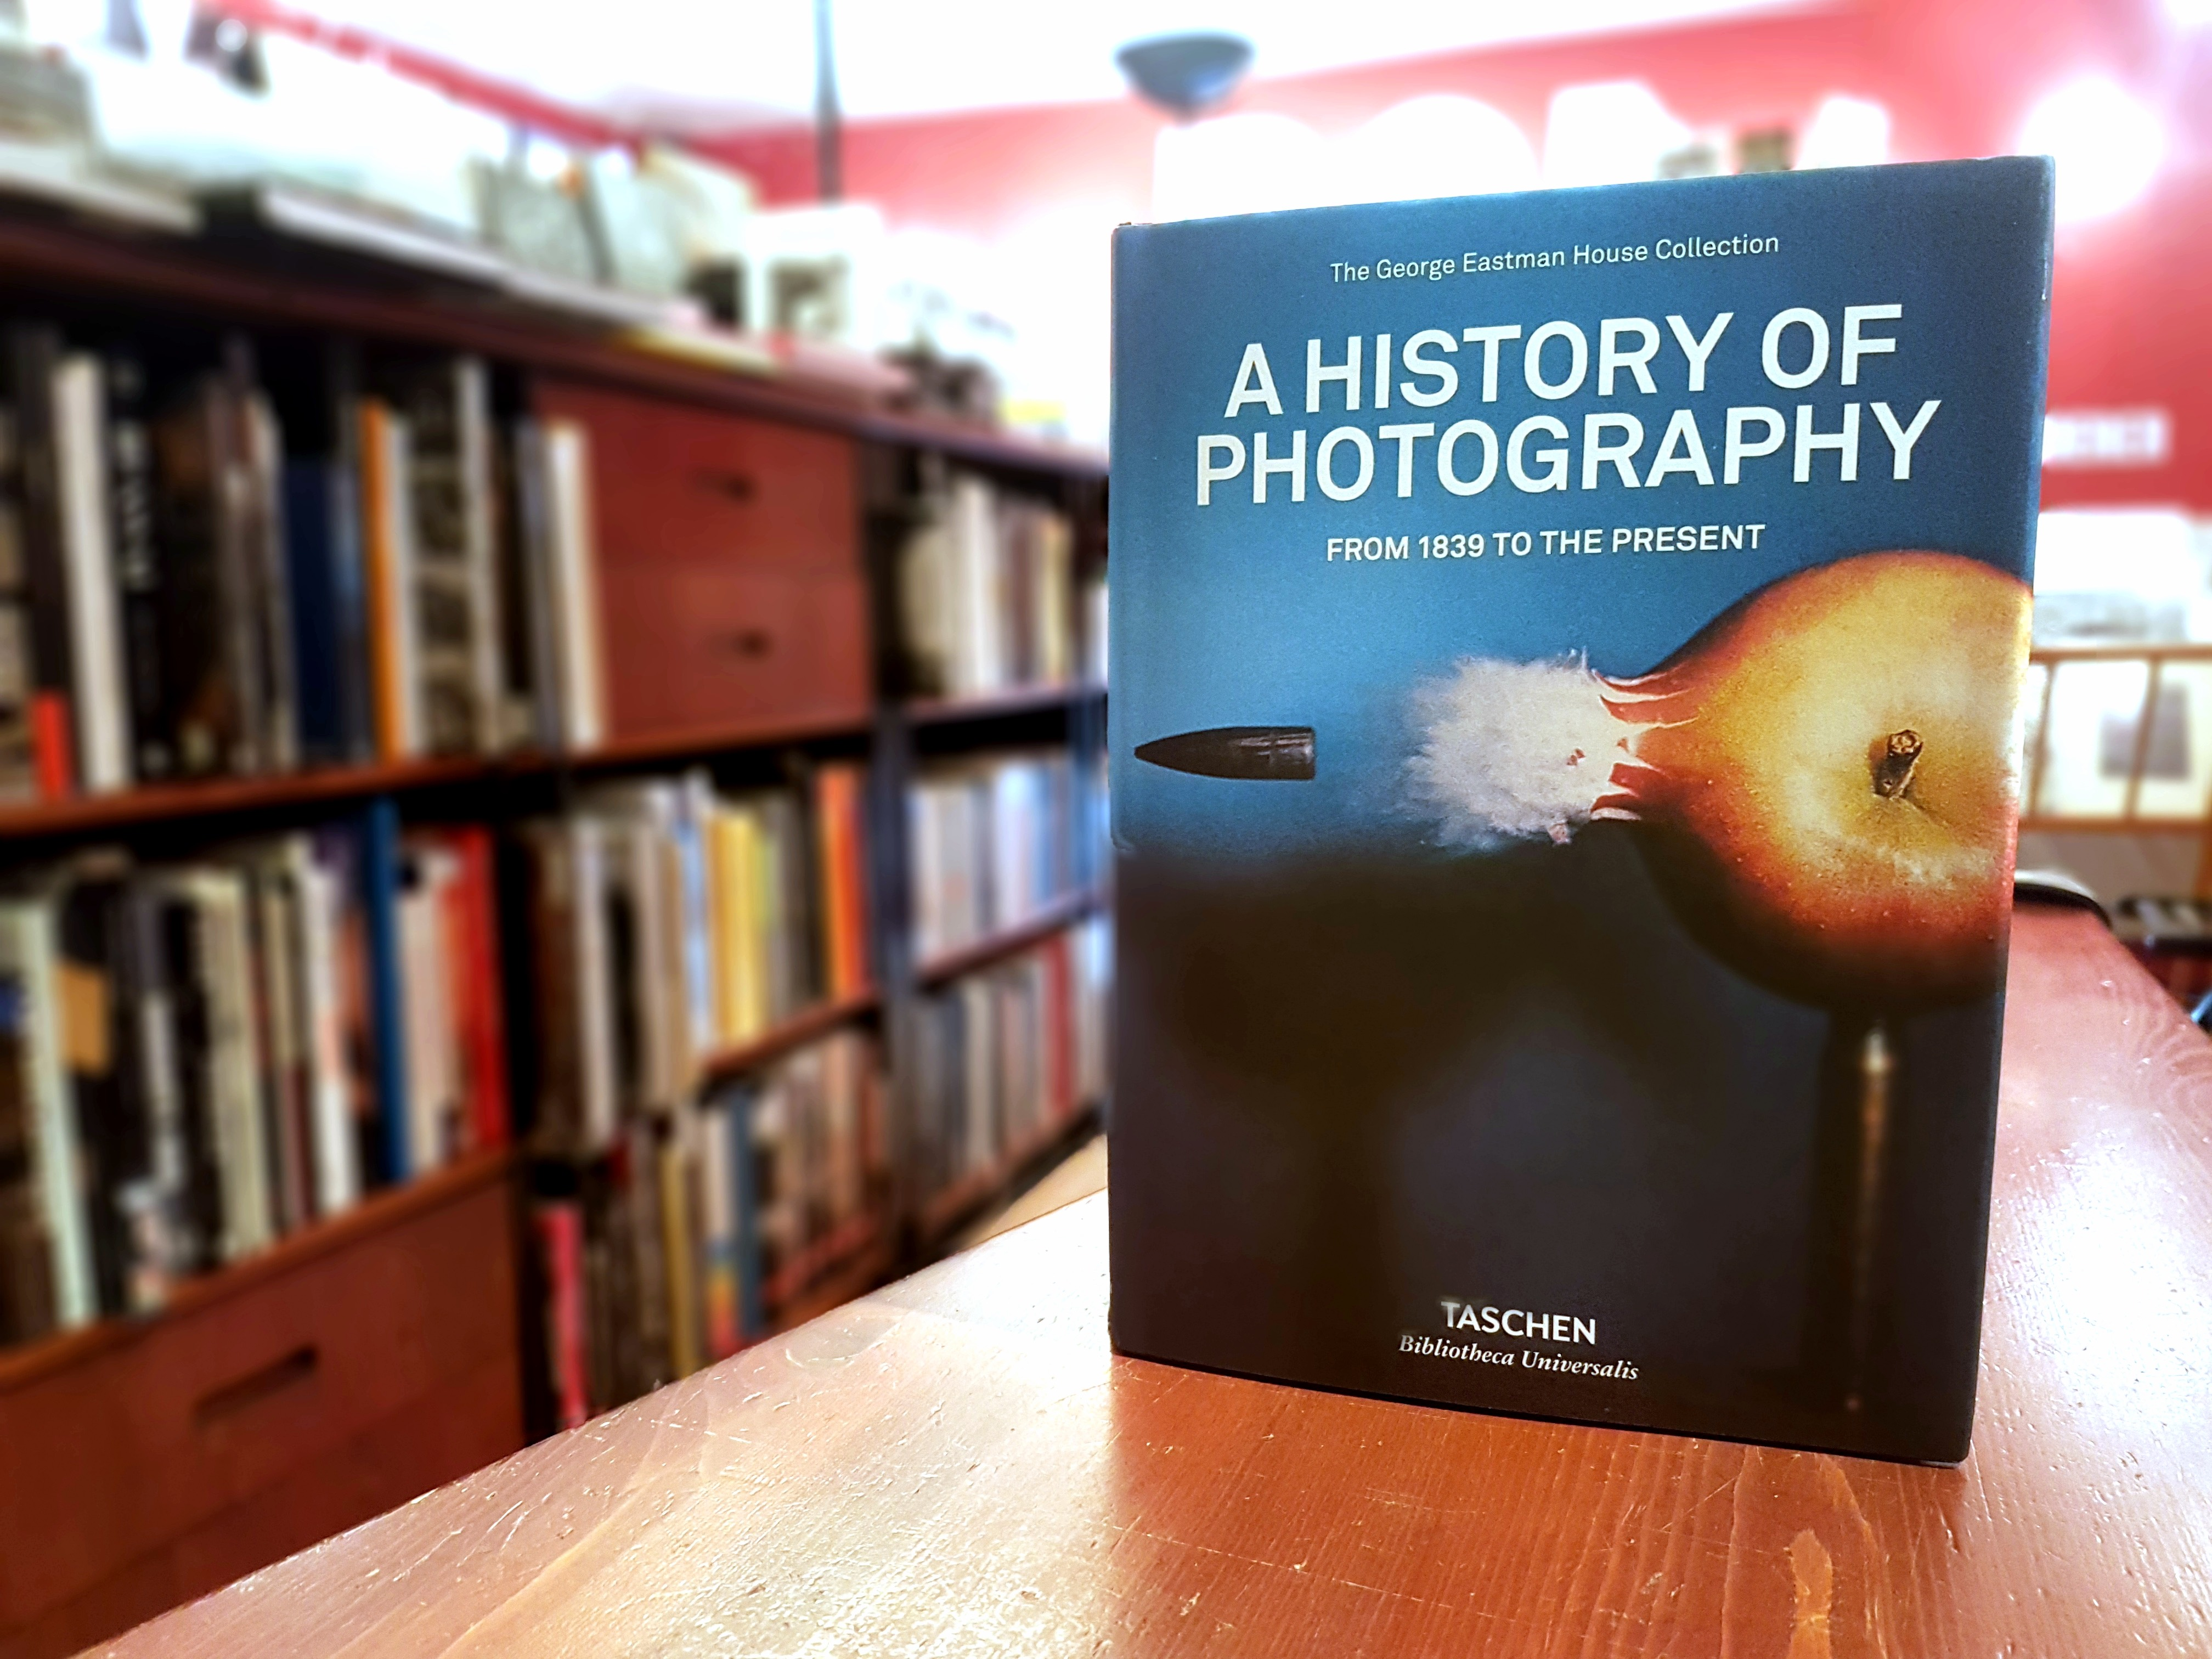 A History of Photography. From 1839 to the Present.